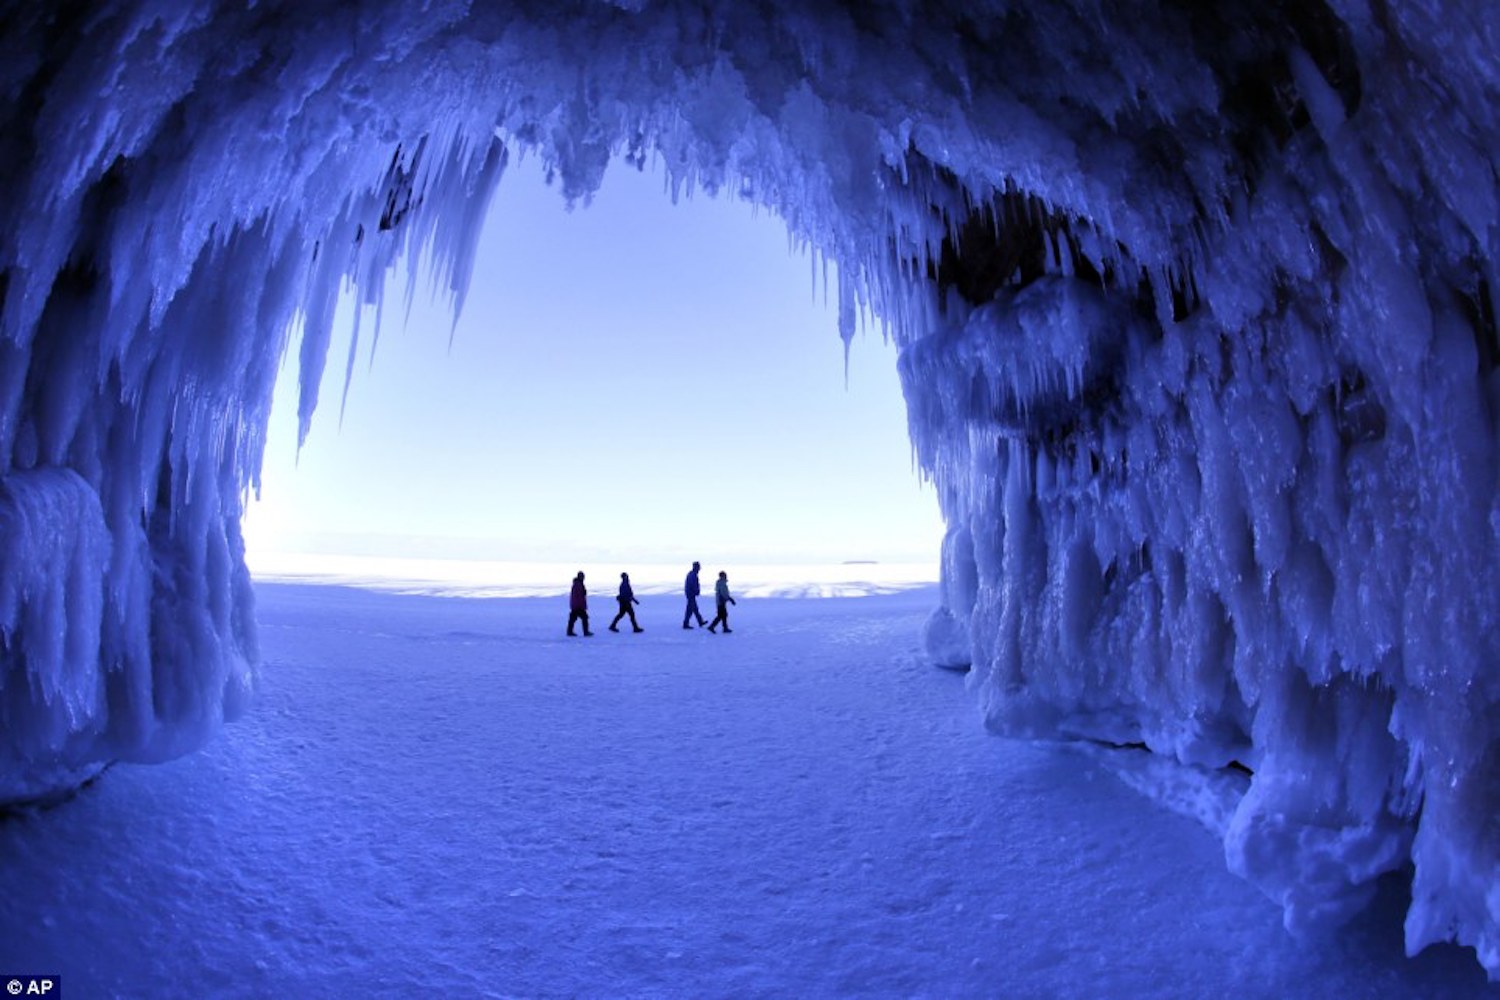 People walking within ice cave